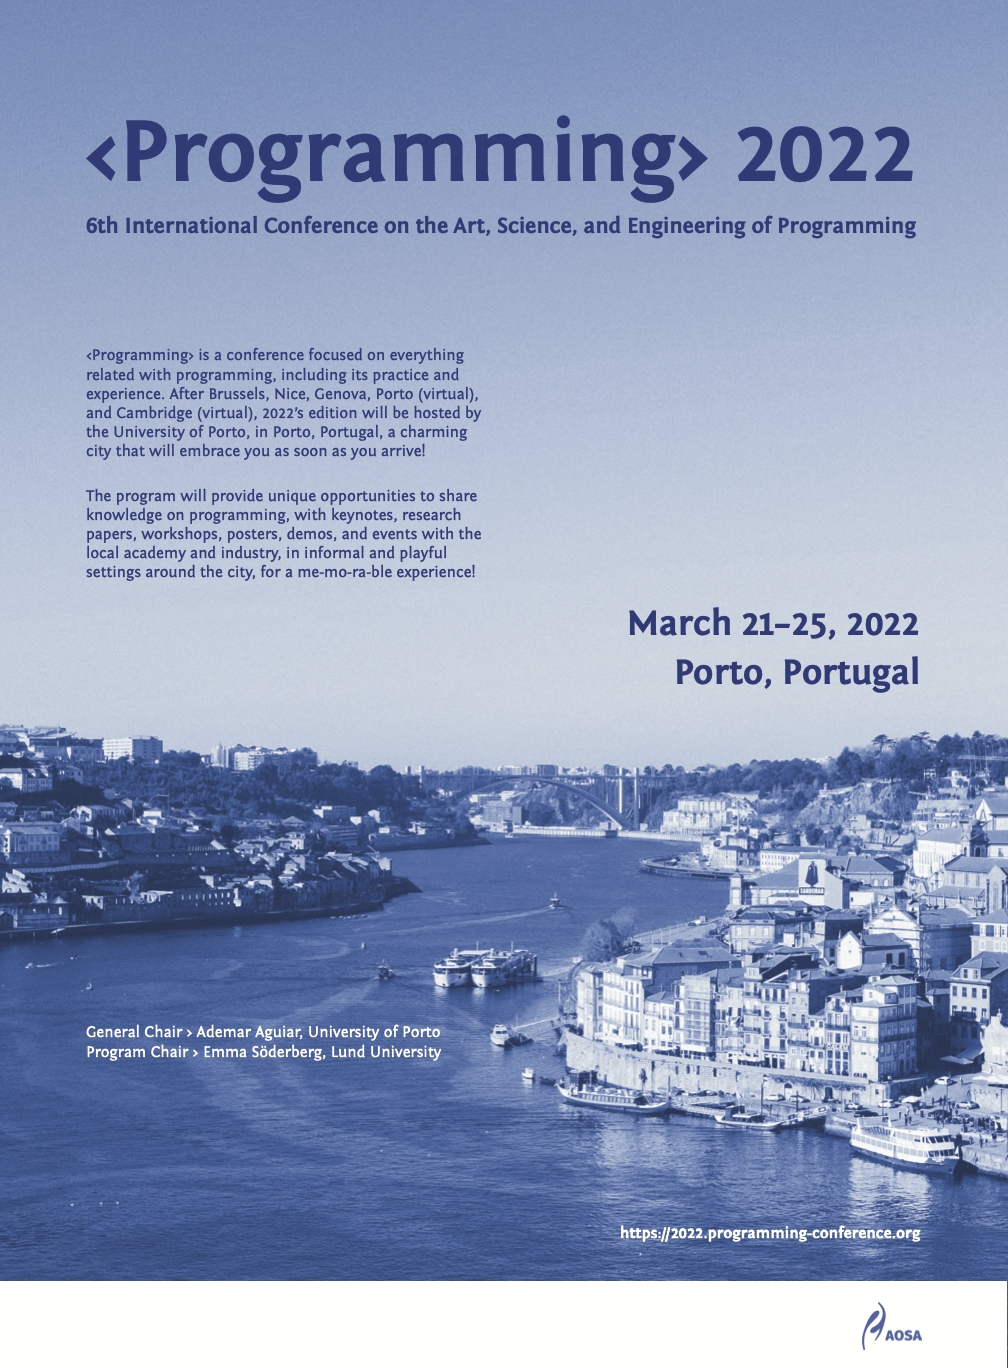 Programmin 2022 Flyer--roughly: After Brussels, Nice, Genova, Porto, Cambridge, this sixth edition will take place (again) in **Porto, Portugal, Mon 21 - Thu 25 March, 2022**, a charming city that will be extremely happy to be able to embrace us all (locals included) as soon as we arrive!